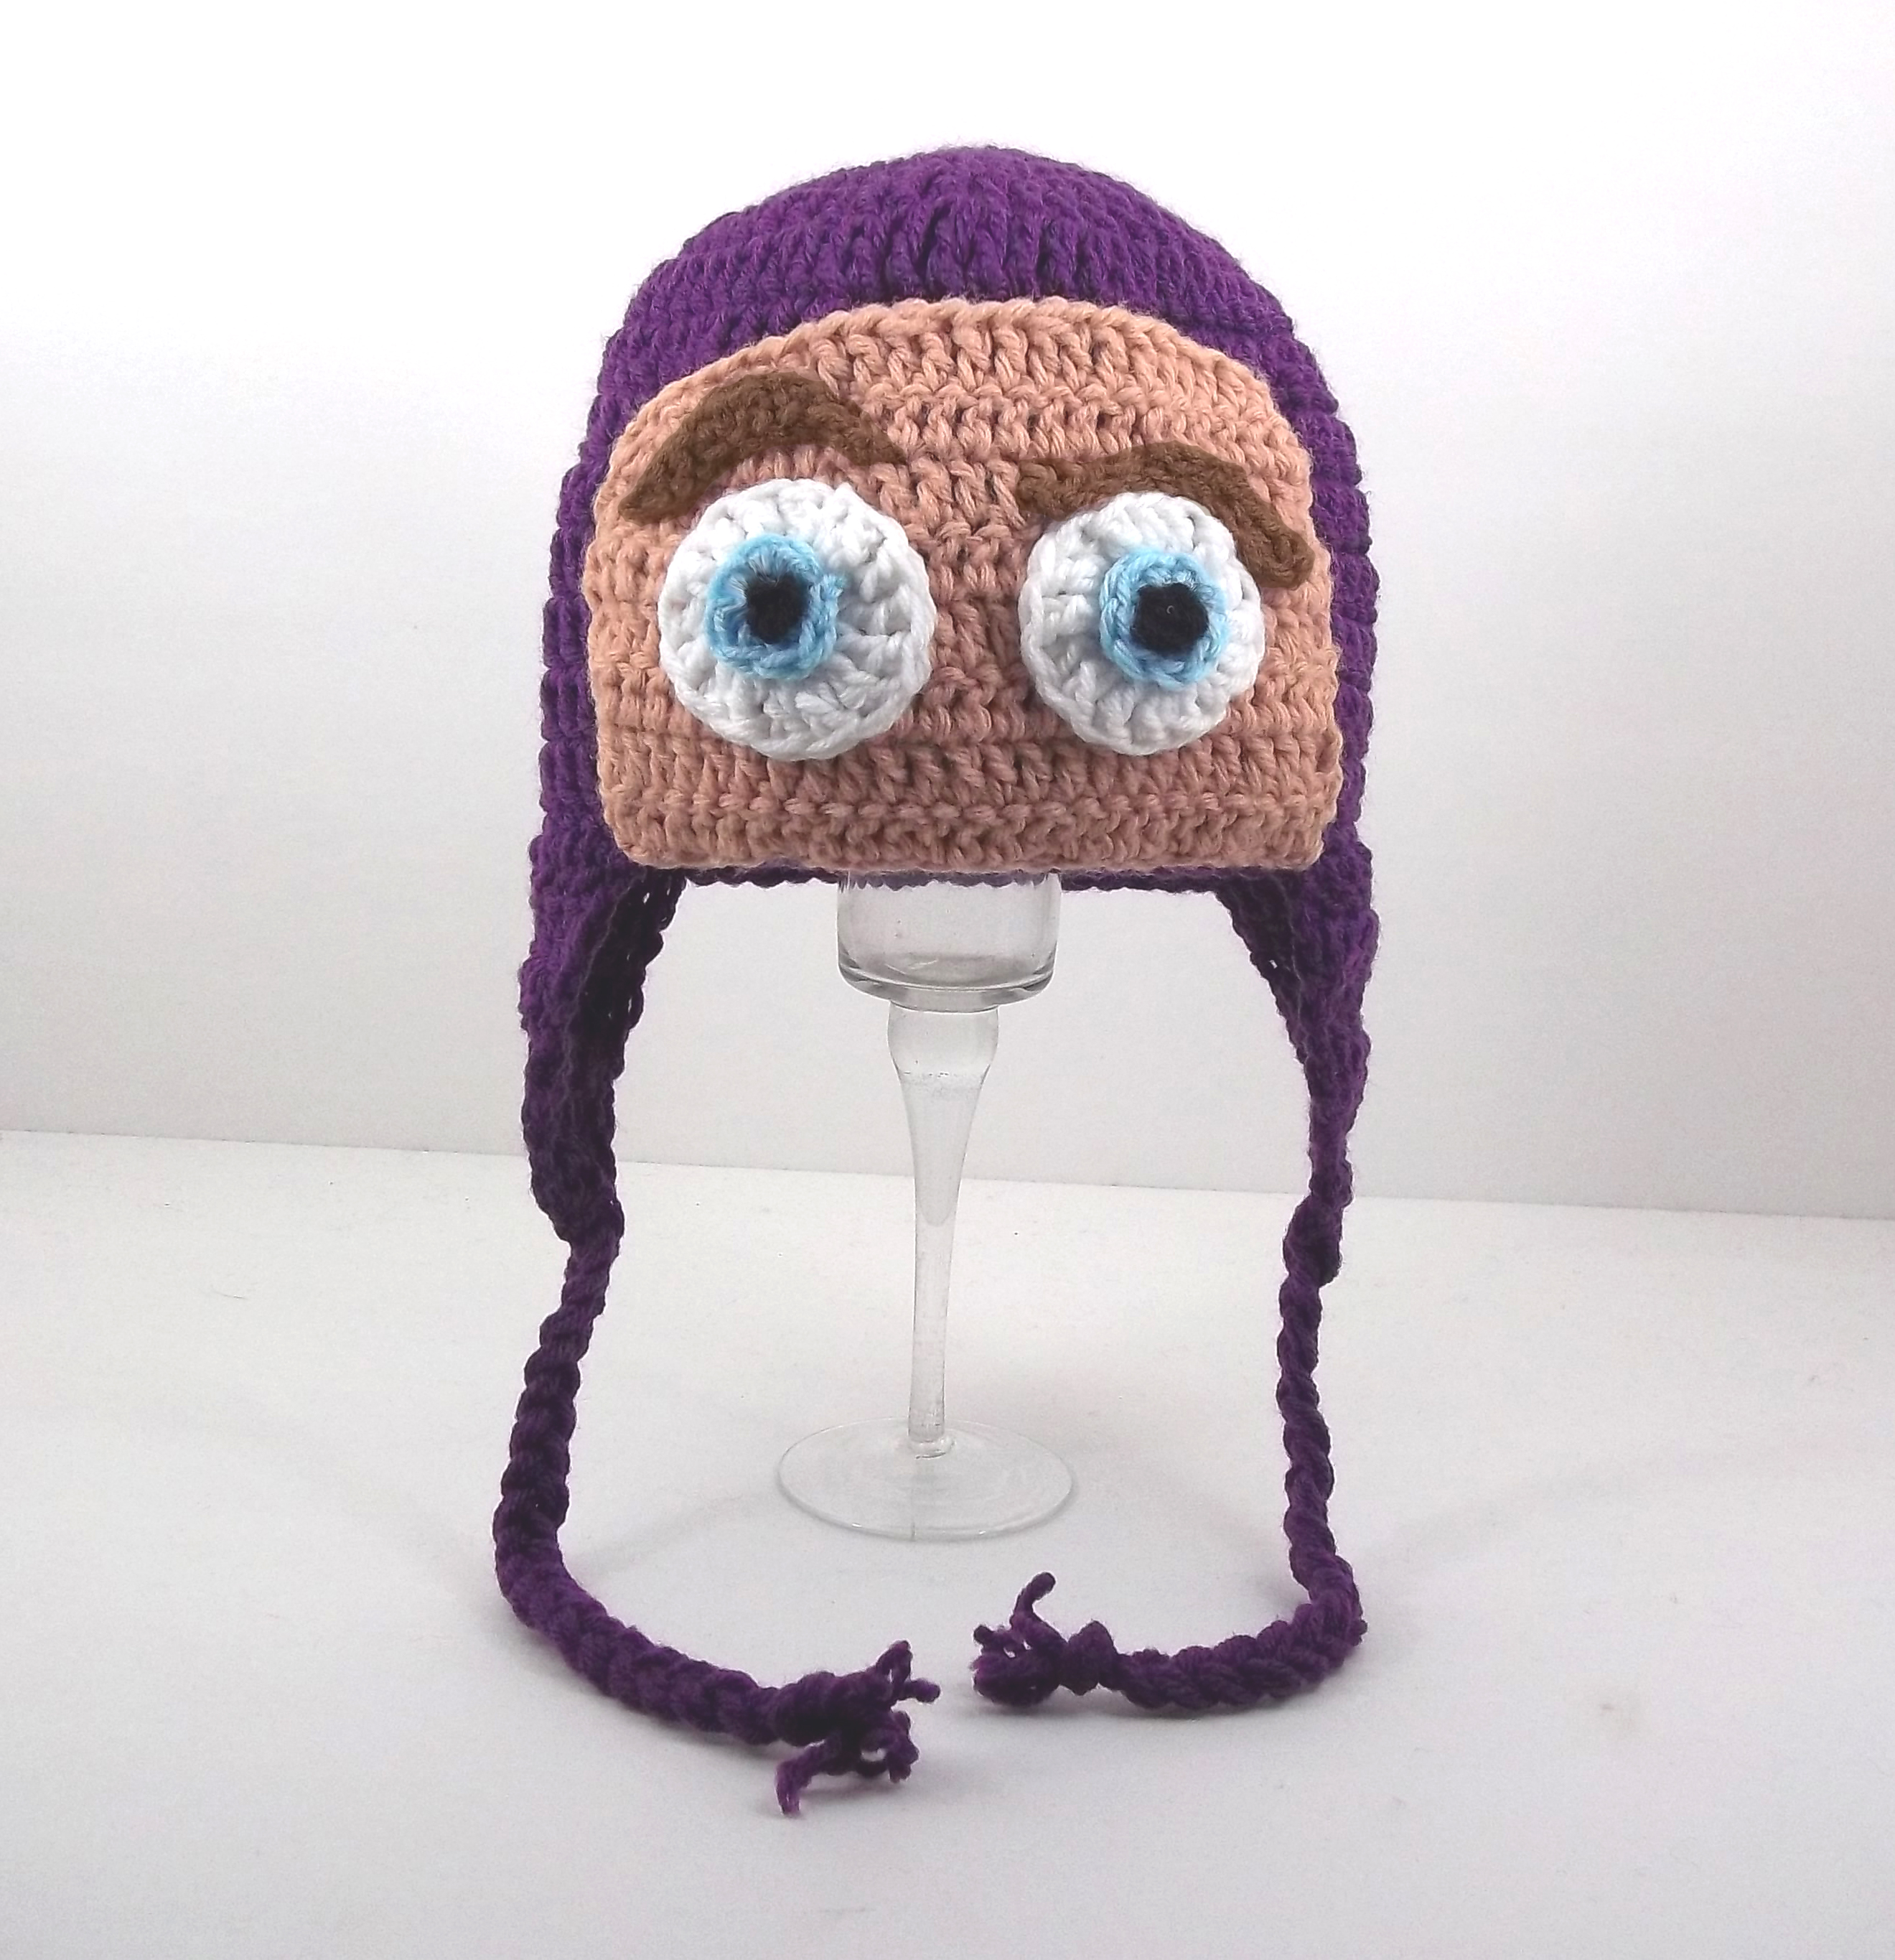 Buzz Lightyear Earflap Hat from Toy Story